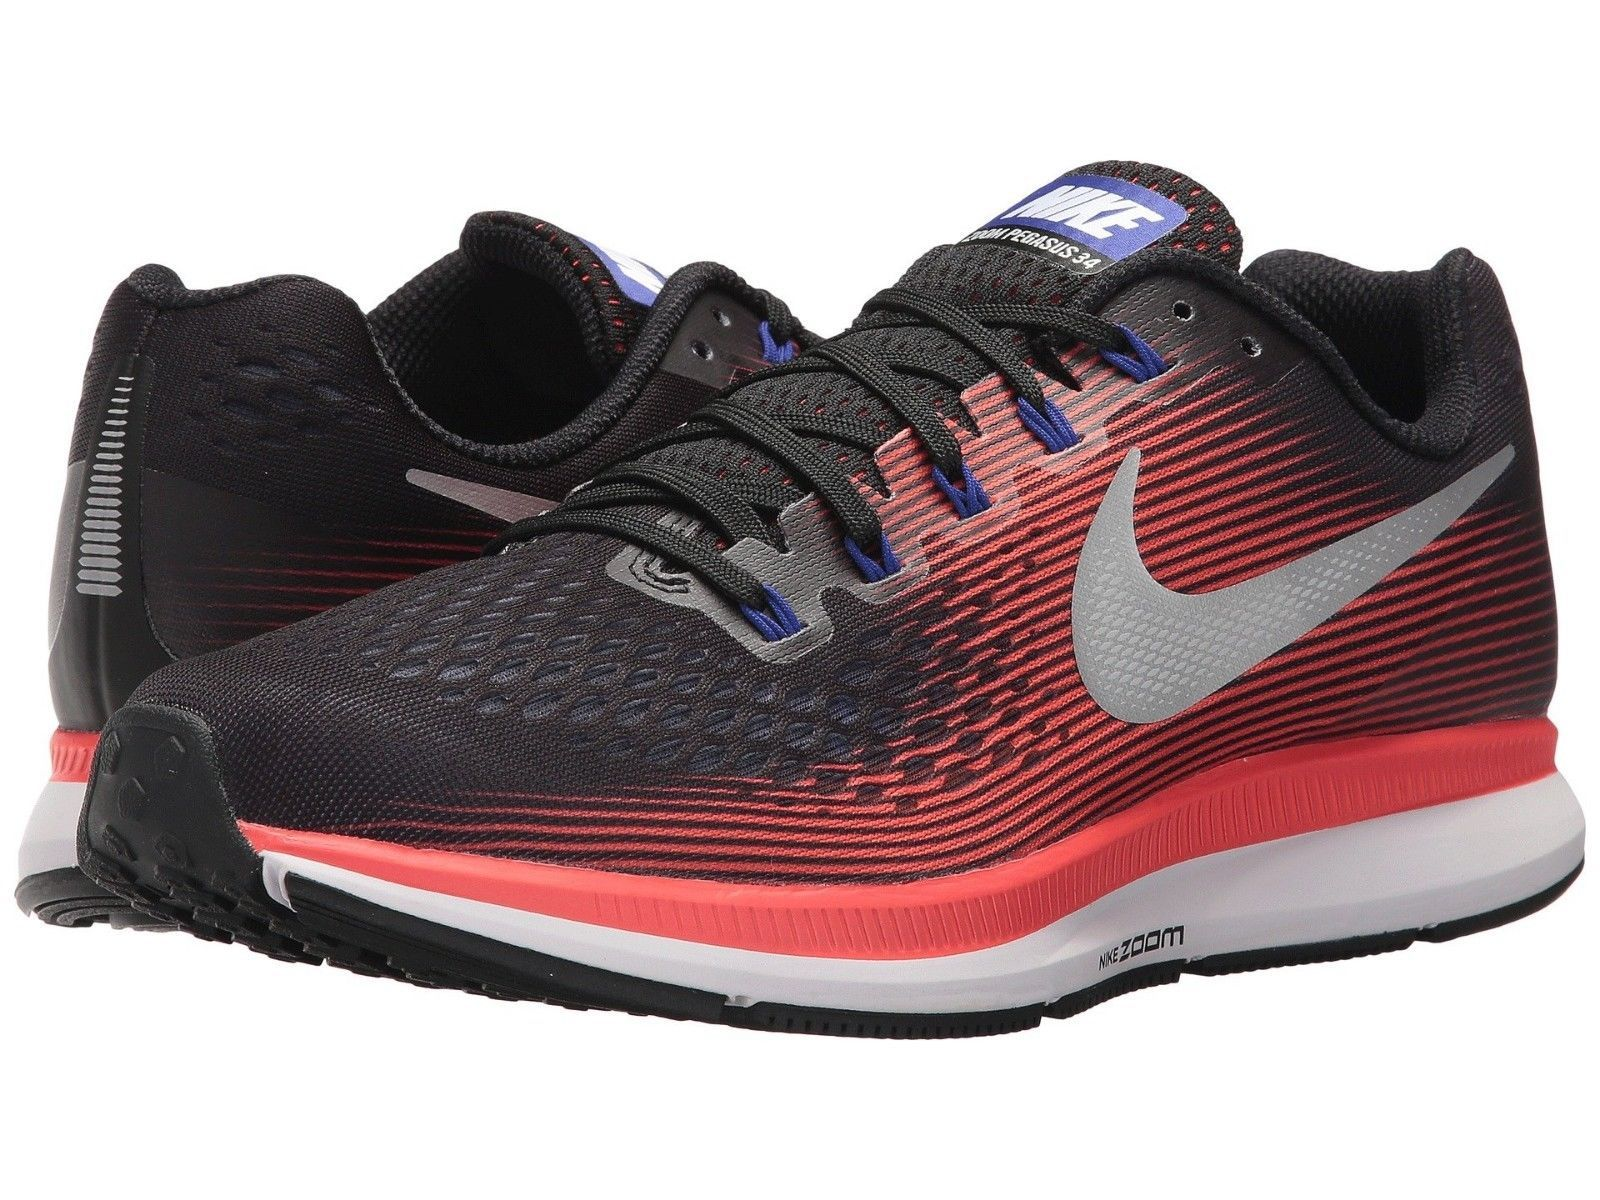 best cheap 121d3 e2b96 Men s Nike Zoom Pegasus 34 Running Shoes, and 50 similar items. 57